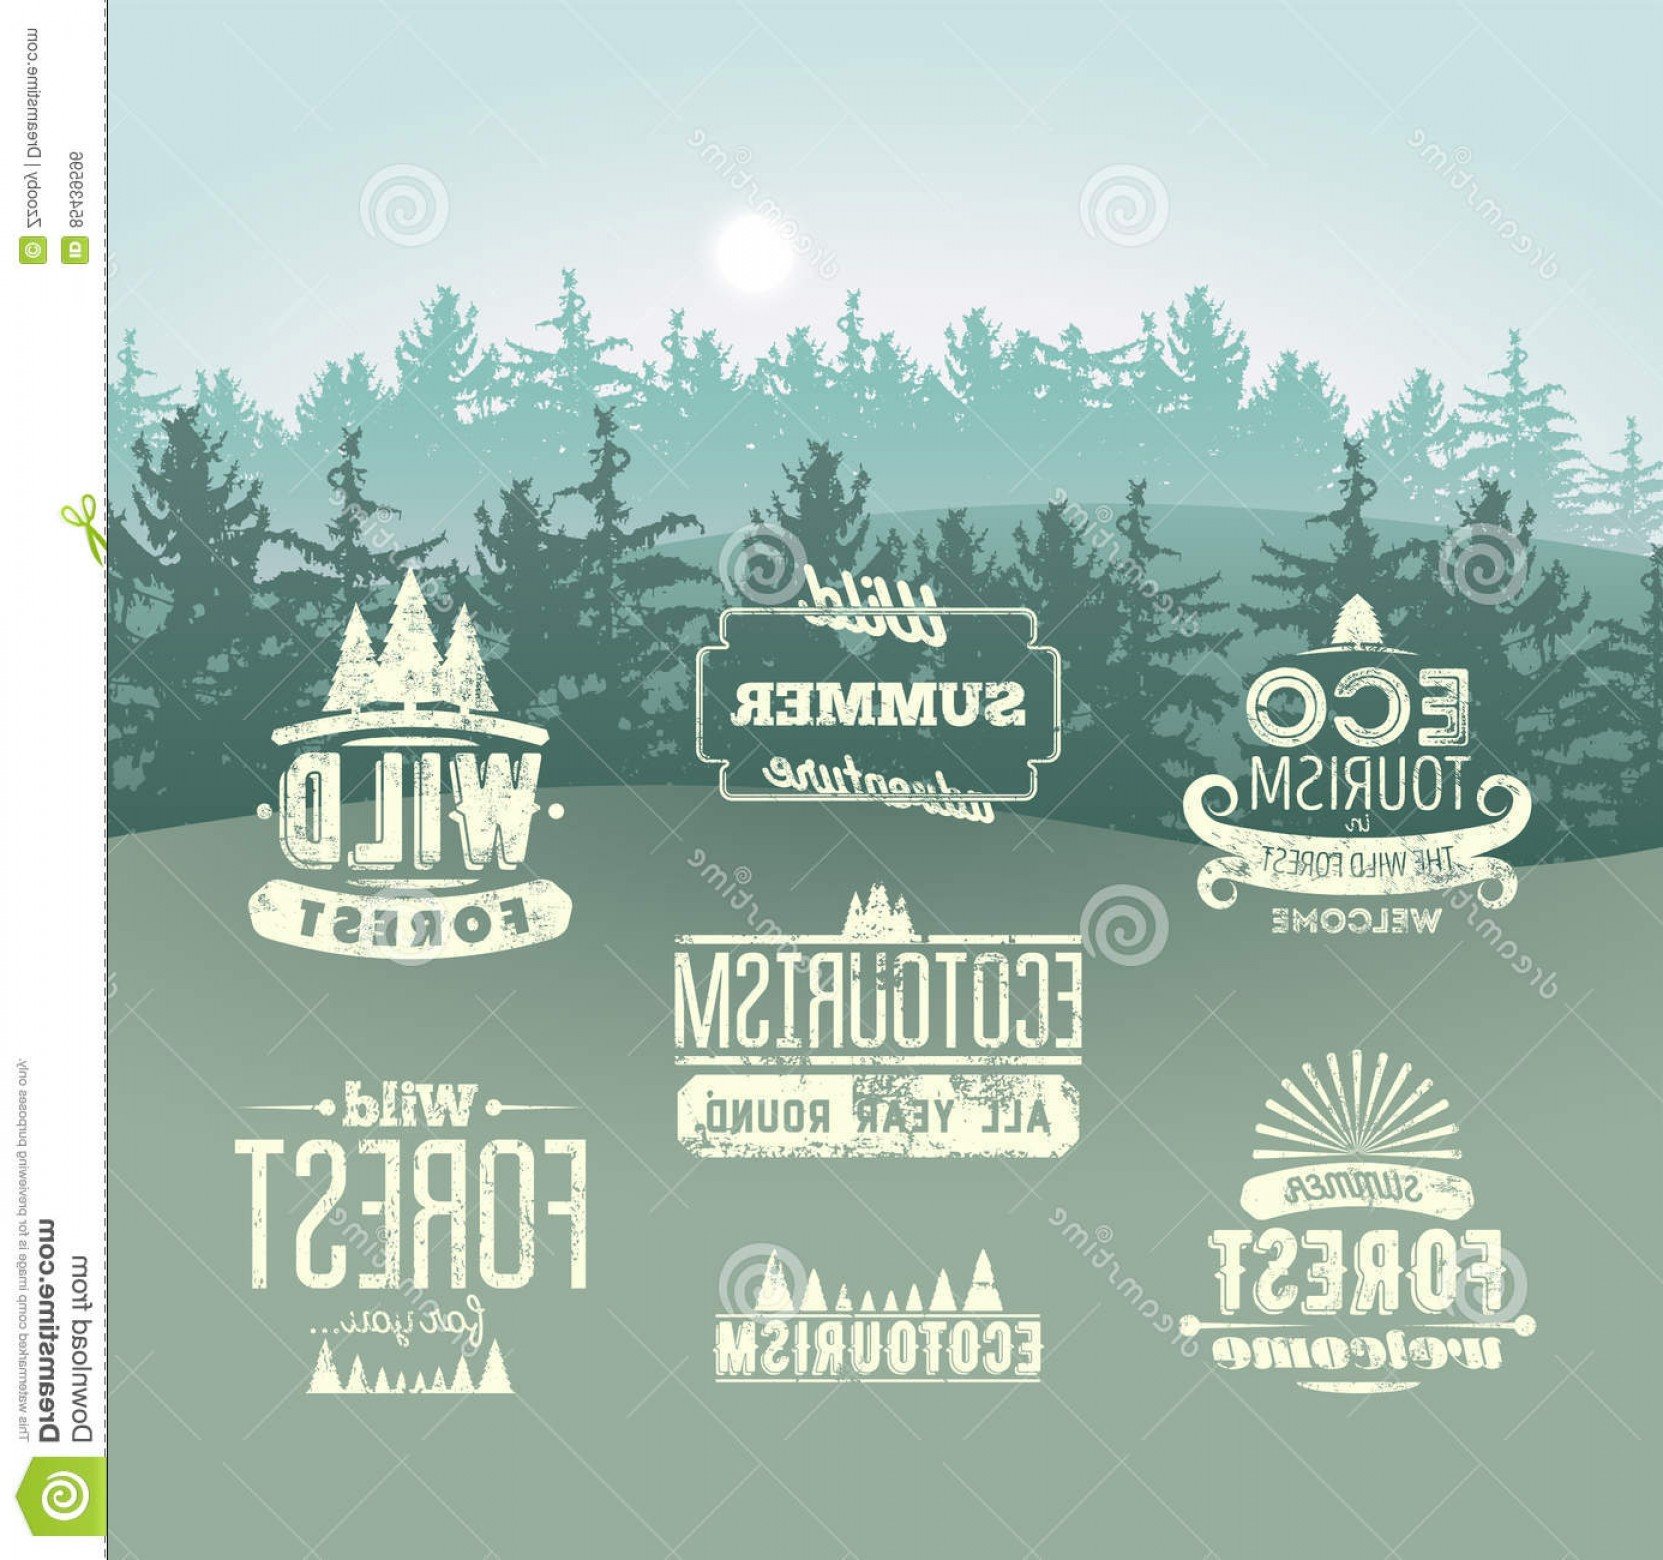 Gru Vector Logos: Stock Illustration Wild Forest Ecotourism Typographic Retro Labels Vintage Badges Logo Signs Background Fir Trees Landscape Gru Image